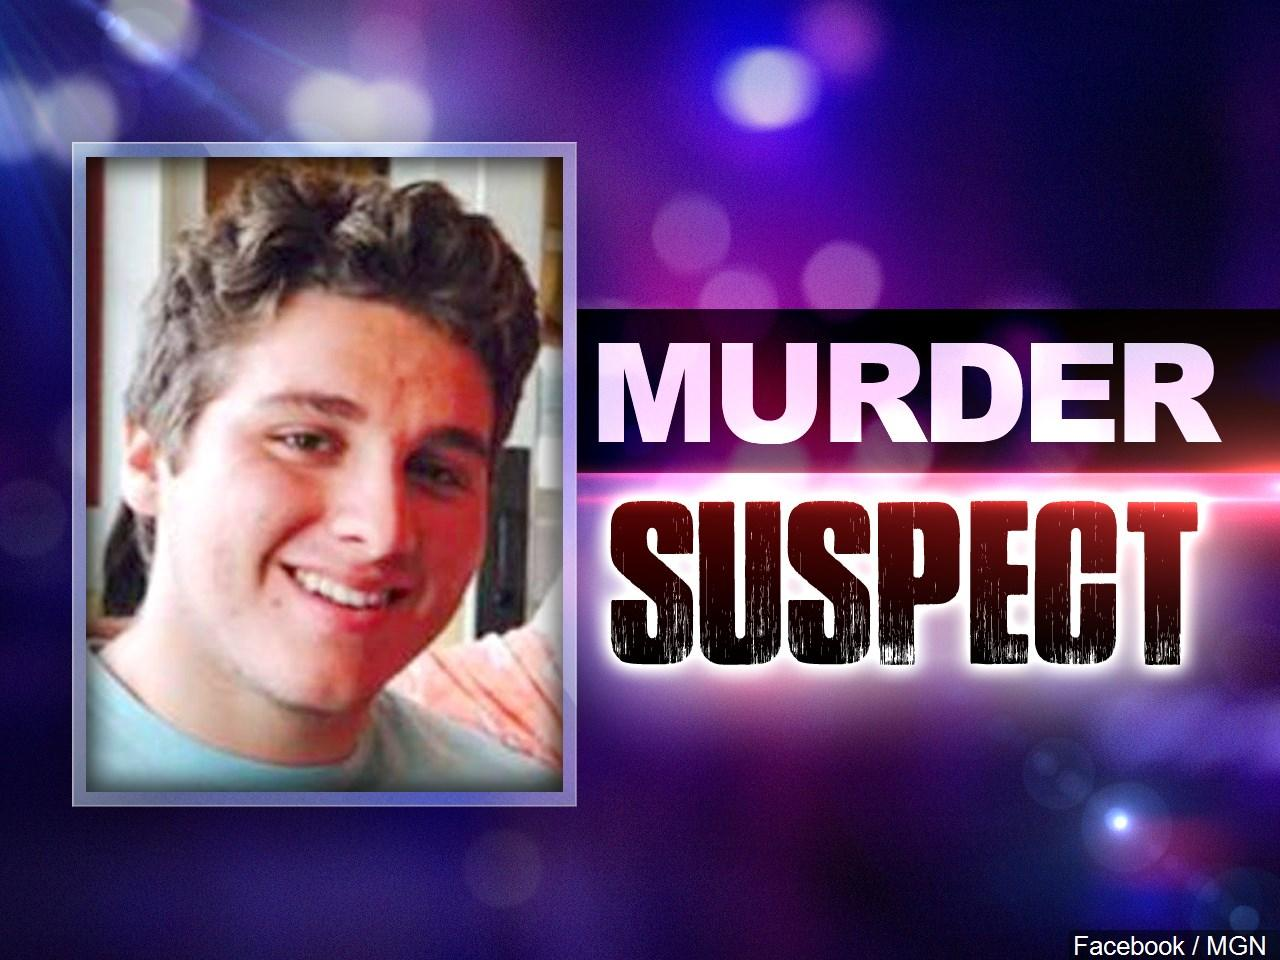 fbi to analyze toxicology of double murder face biting suspect wpec austin harrouff will face two counts of first degree murder for the tequesa killings